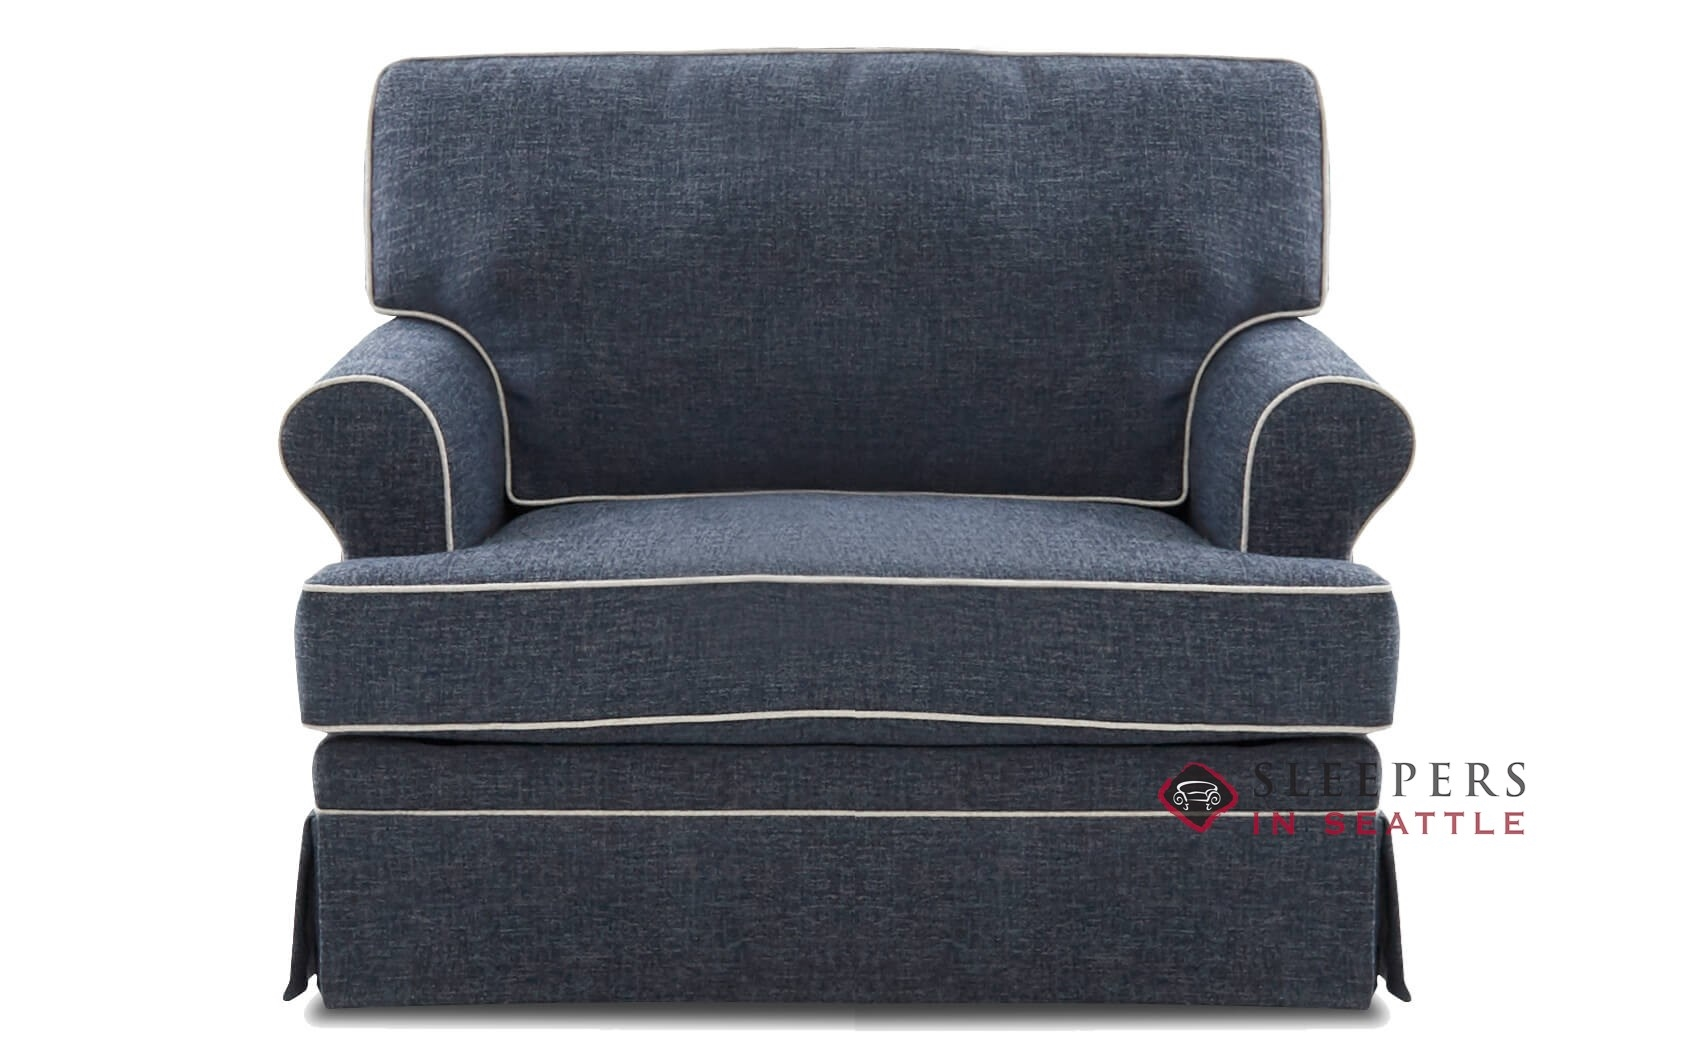 Customize And Personalize Cranston Chair Fabric Sofa By Savvy Size Bed Sleepersinseattle